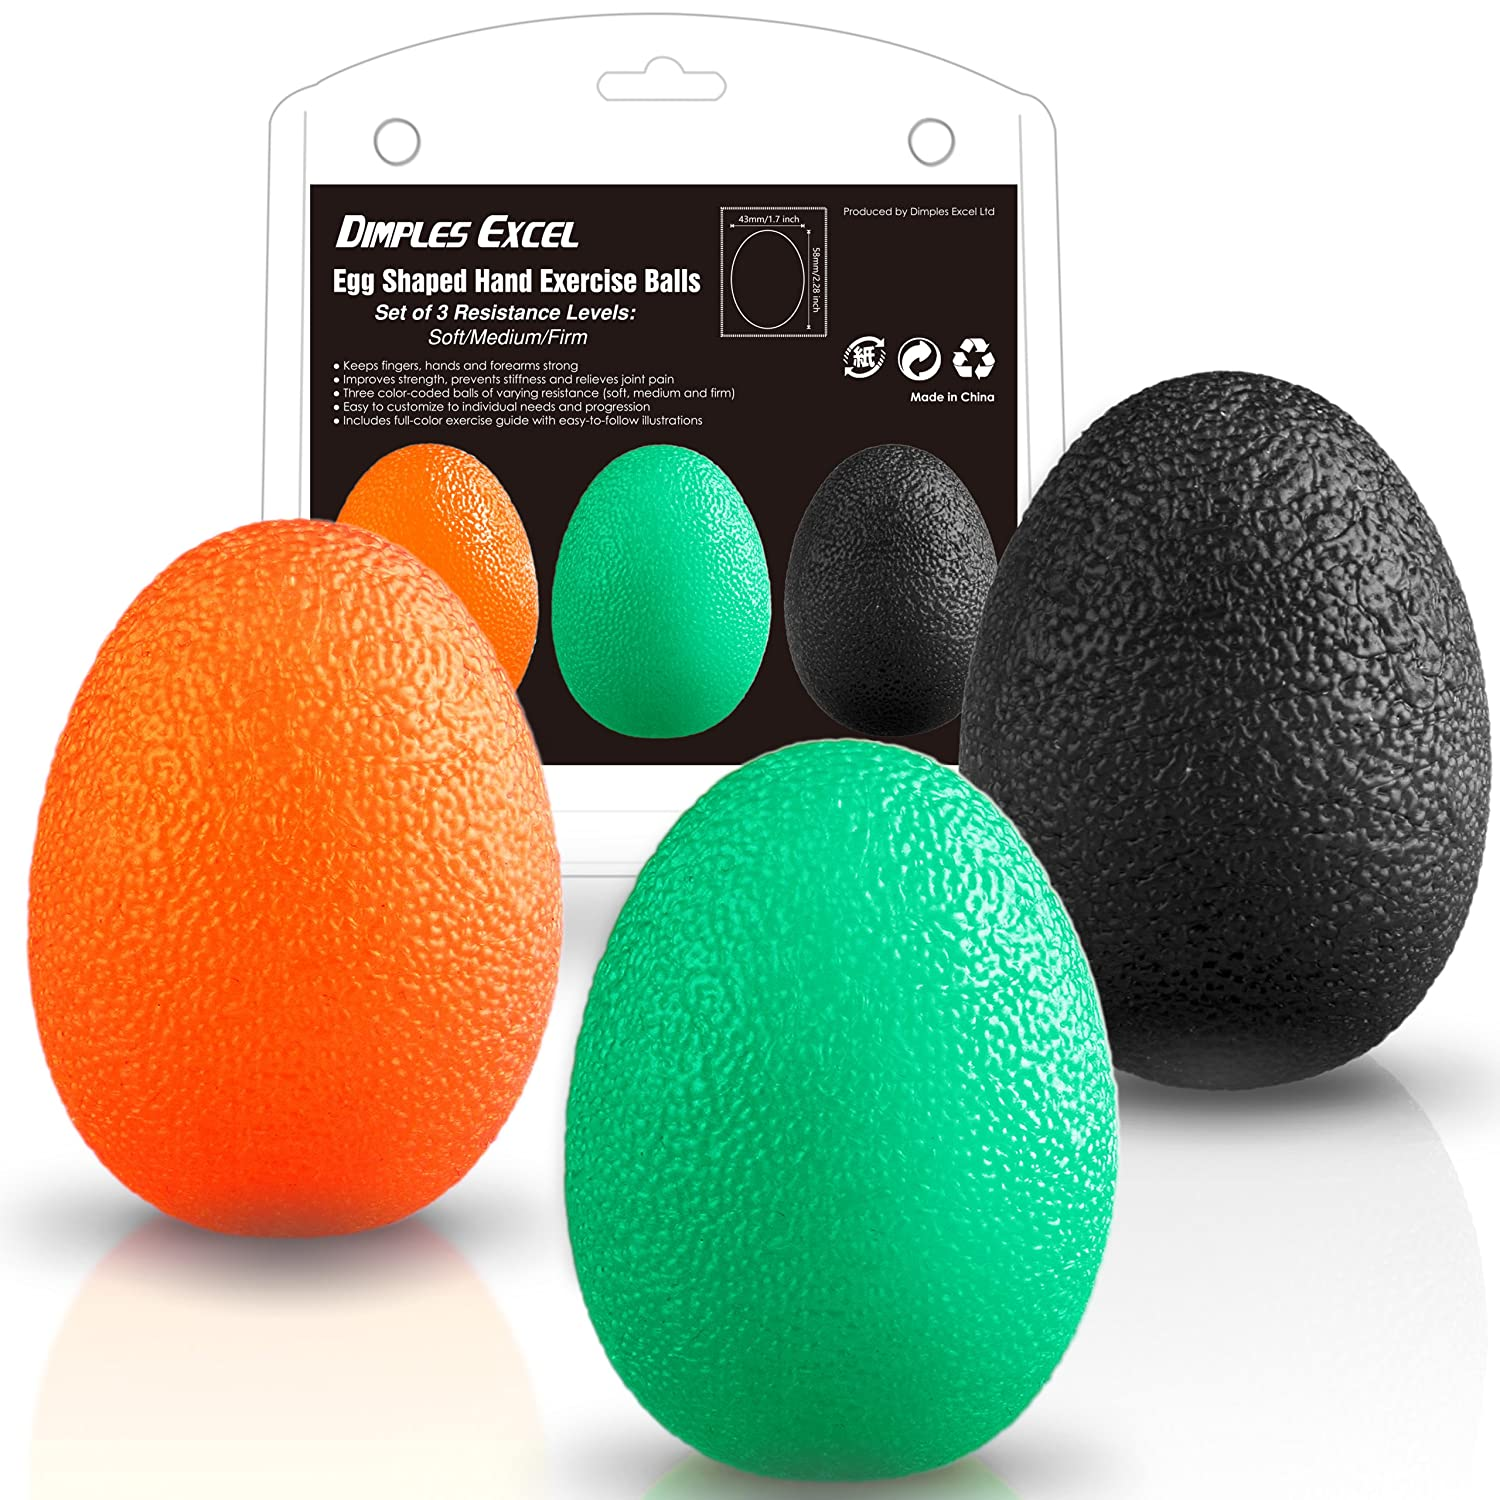 Dimples Excel Squeeze Stress Balls for Hand, Finger and Grip Strengthening  - Set of 3 Resistance